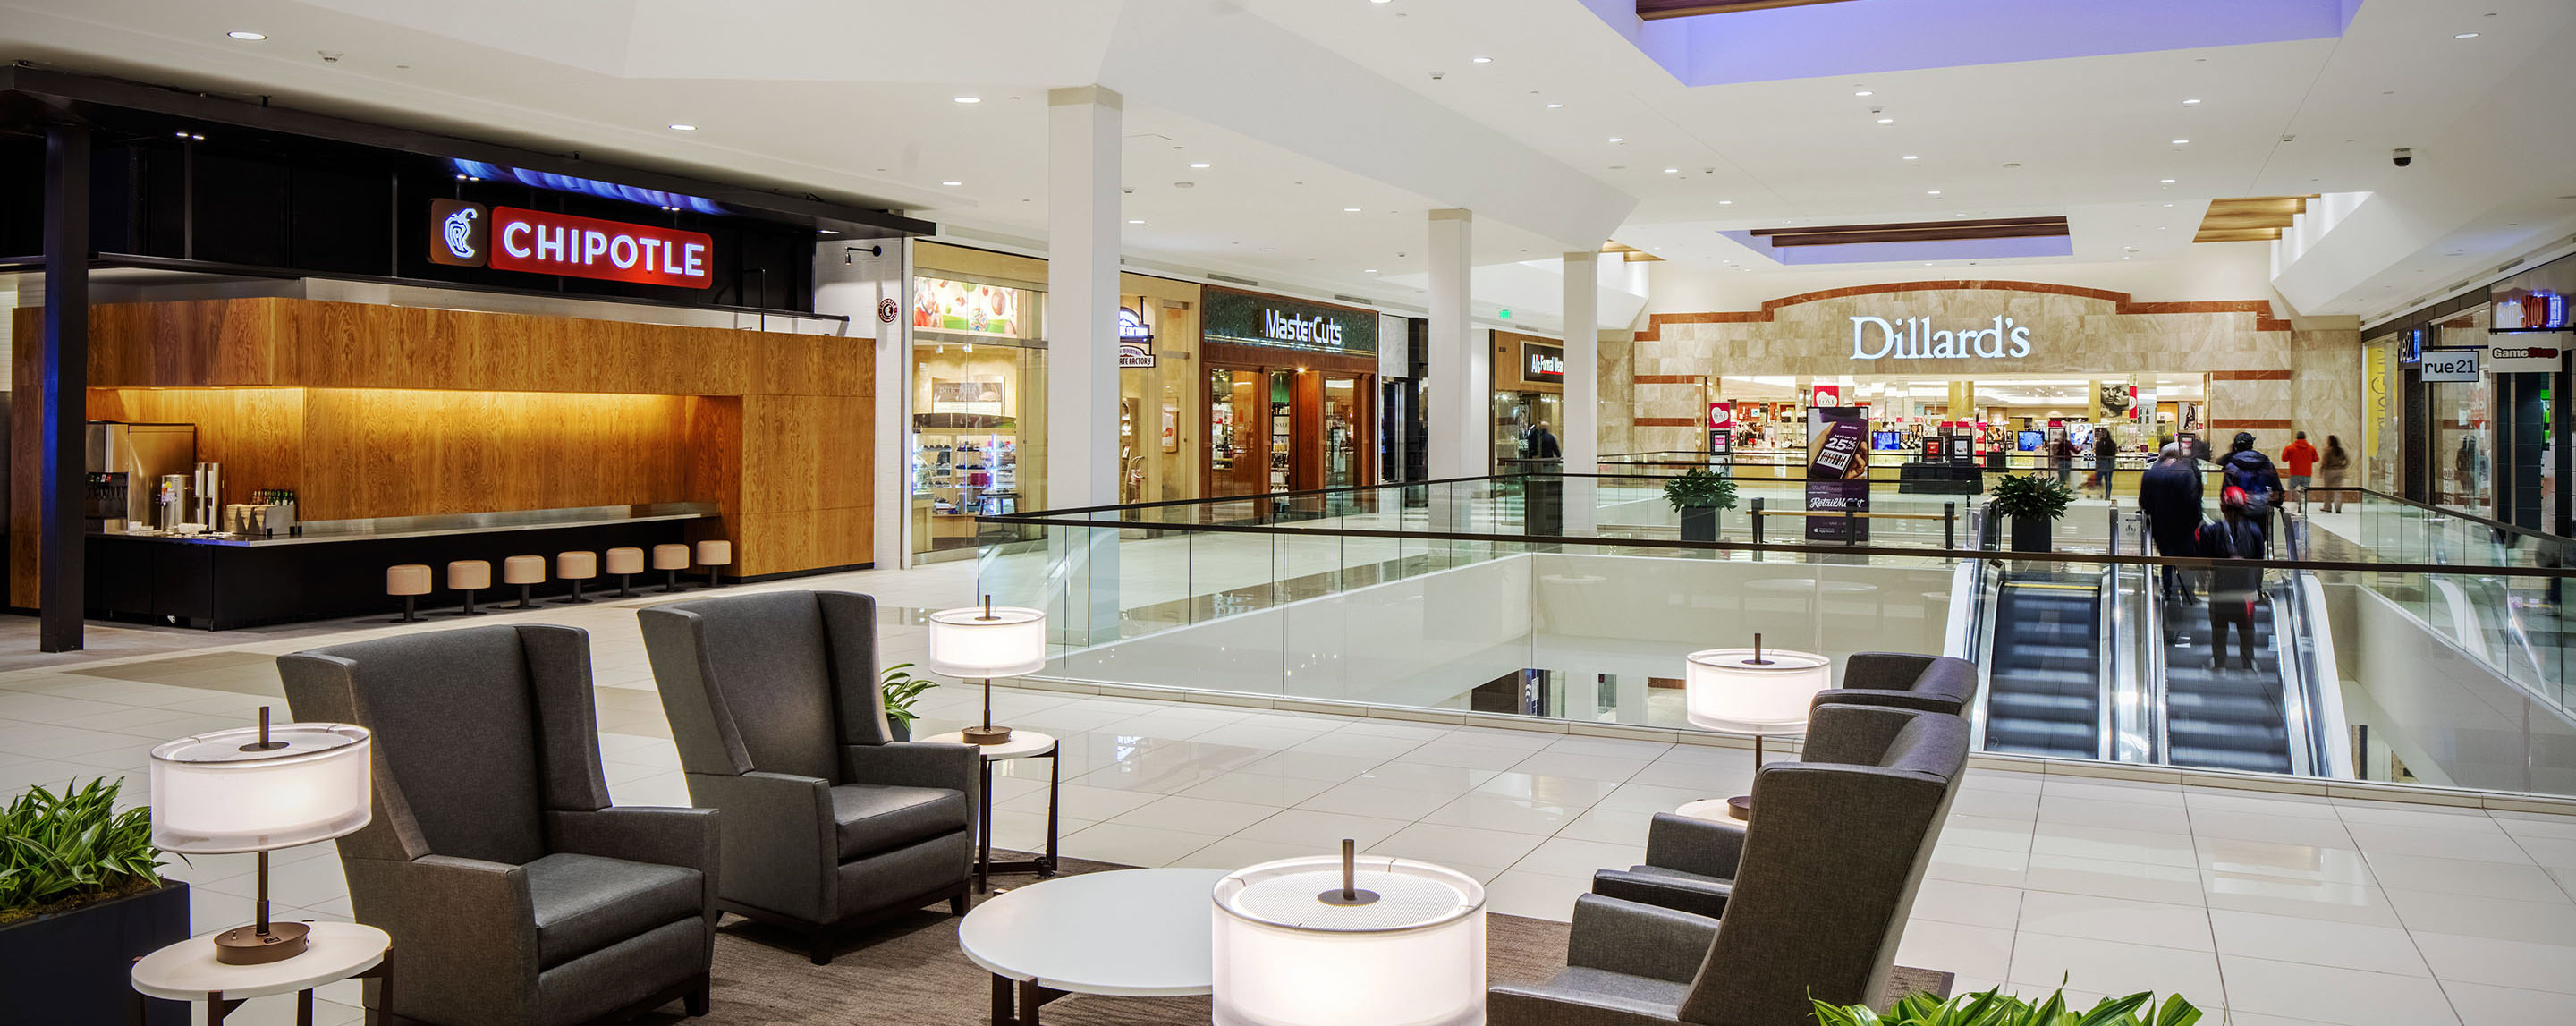 Shoppers come up the elevators to the second level of Southwest Plaza, which offers comfortable seating and a variety of restaurants and retailers.